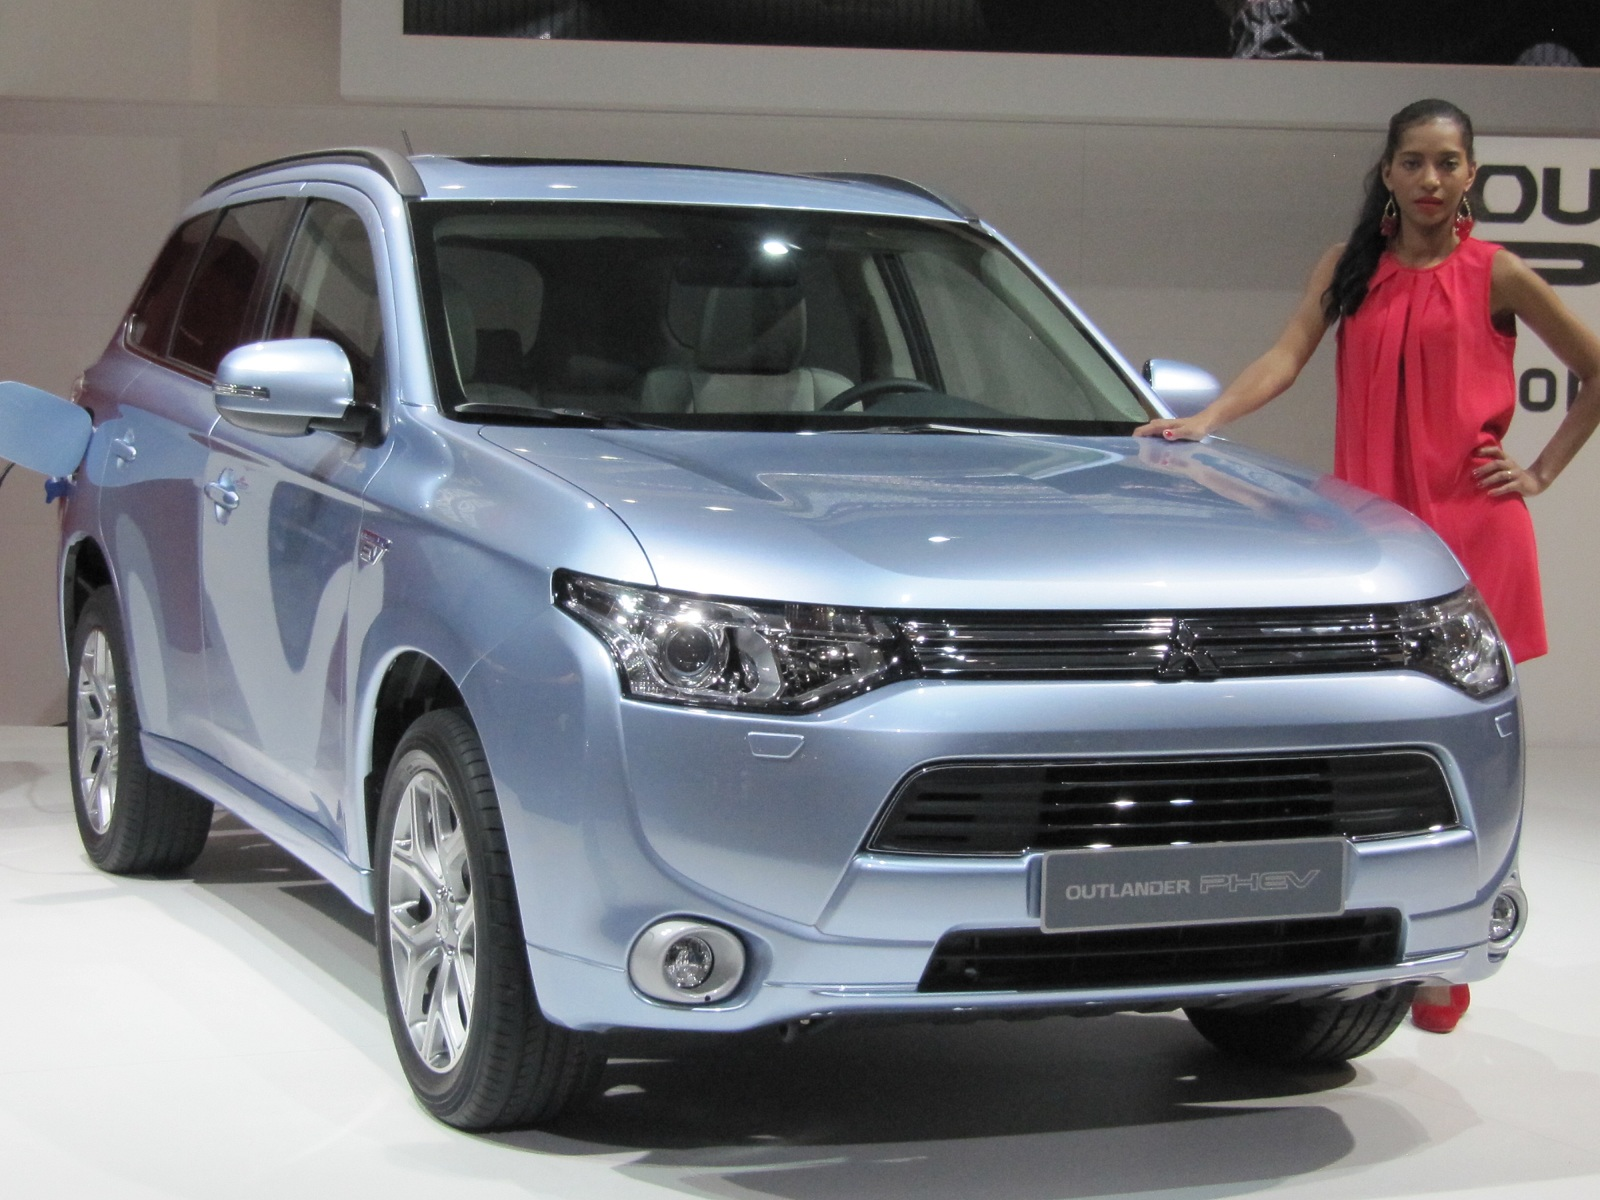 2013 mitsubishi outlander plug in hybrid gallery 2012. Black Bedroom Furniture Sets. Home Design Ideas